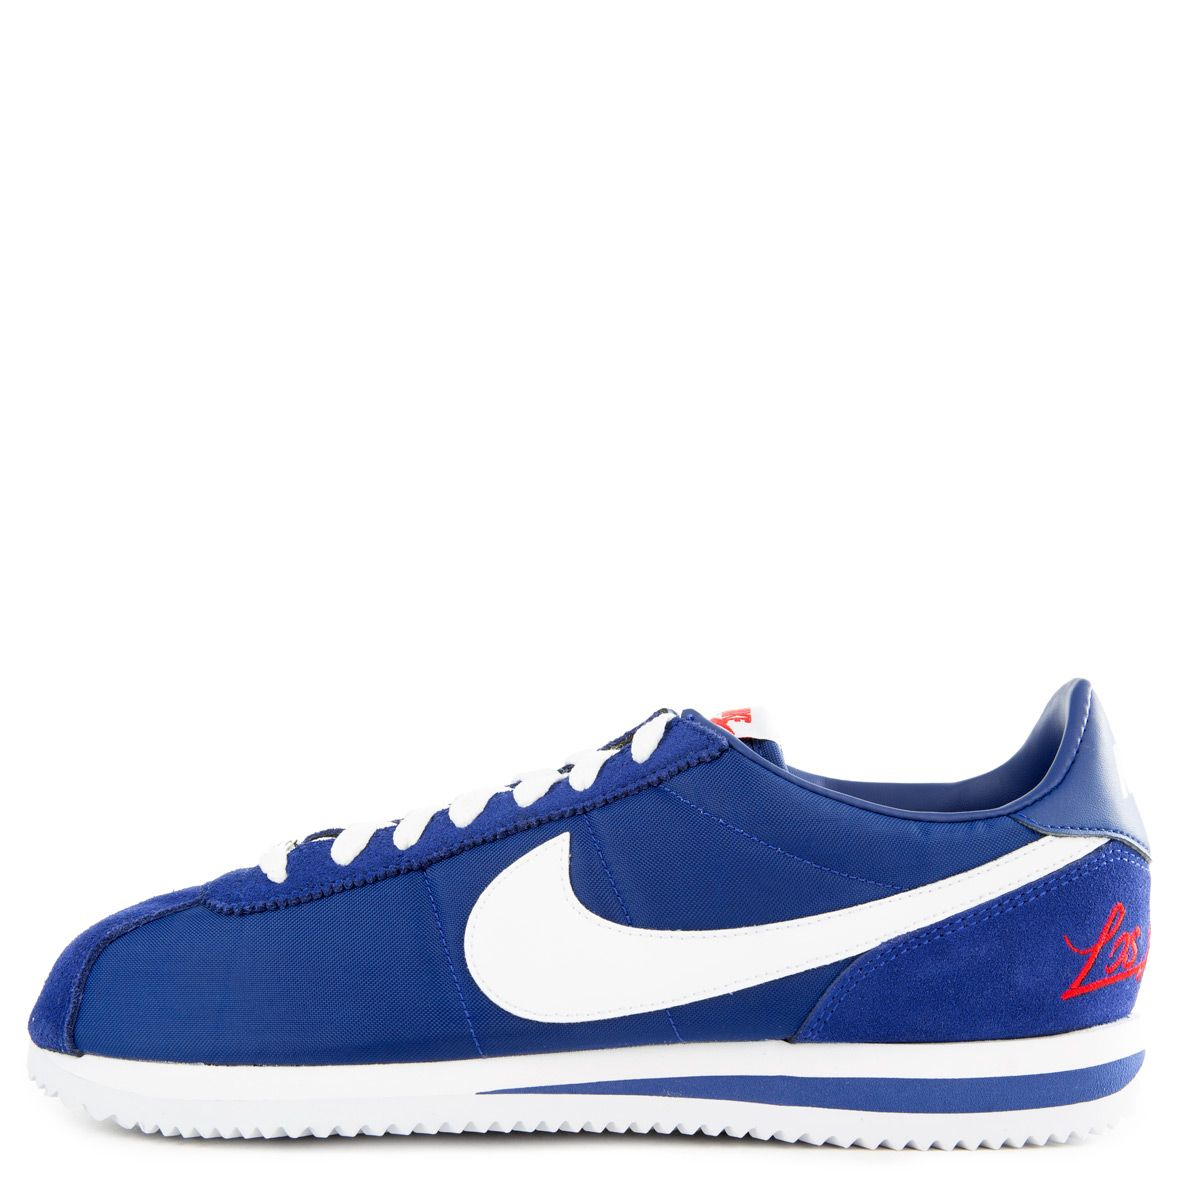 quality design ad163 a0dd9 NIKE CORTEZ BASIC DEEP ROYAL BLUE/WHITE-MEALLIC SILVER